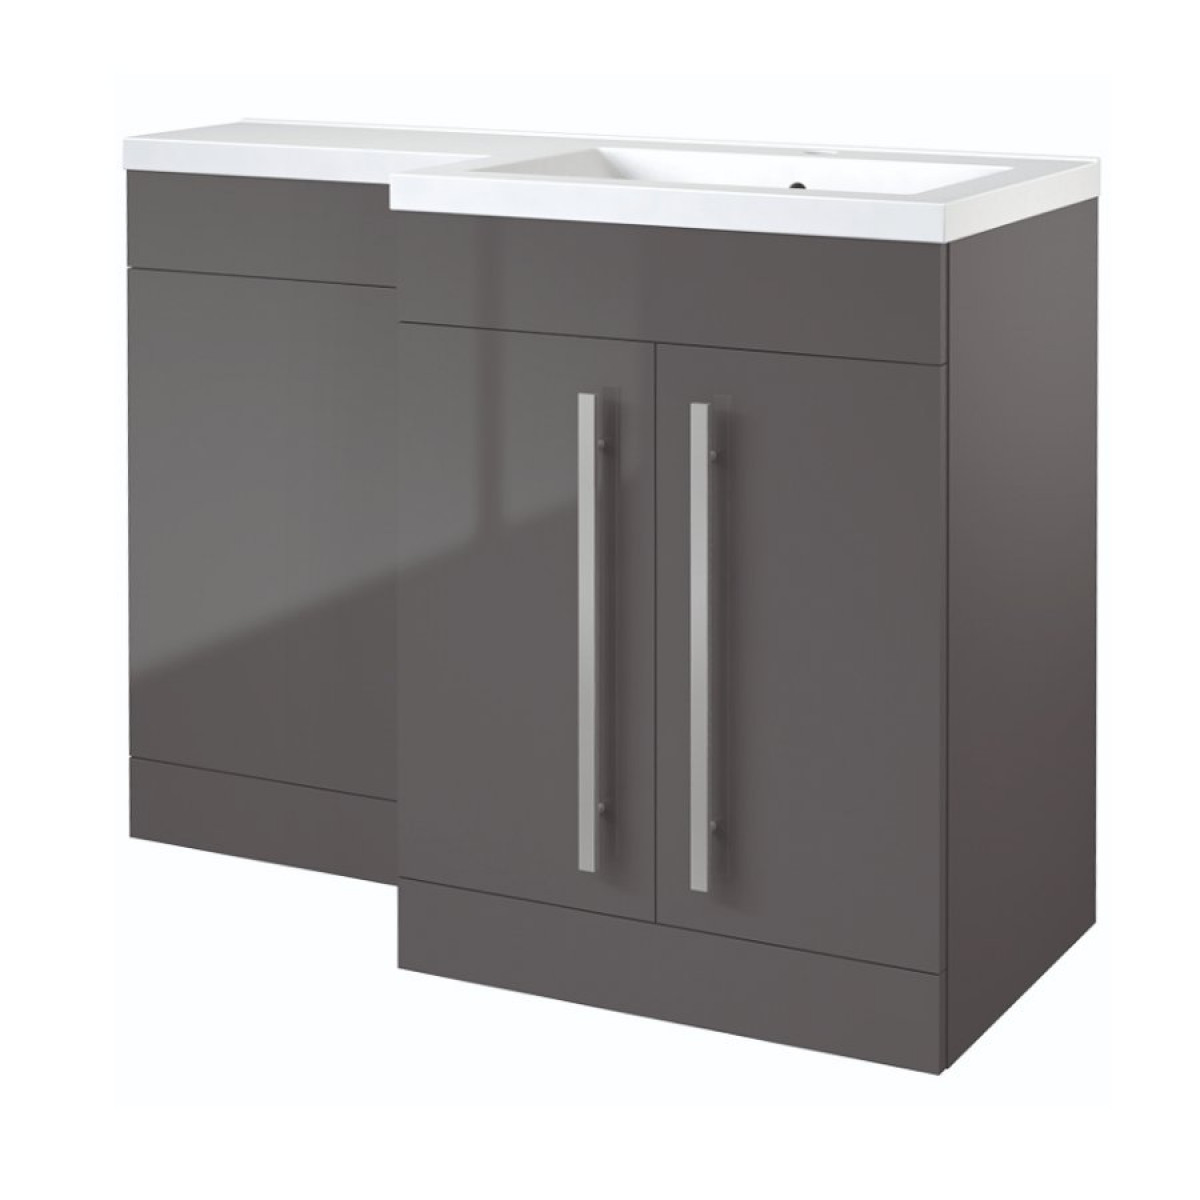 l shaped furniture. Kartell Matrix 2-Door L-Shaped Furniture Pack 1100mm - Grey Gloss RH L Shaped